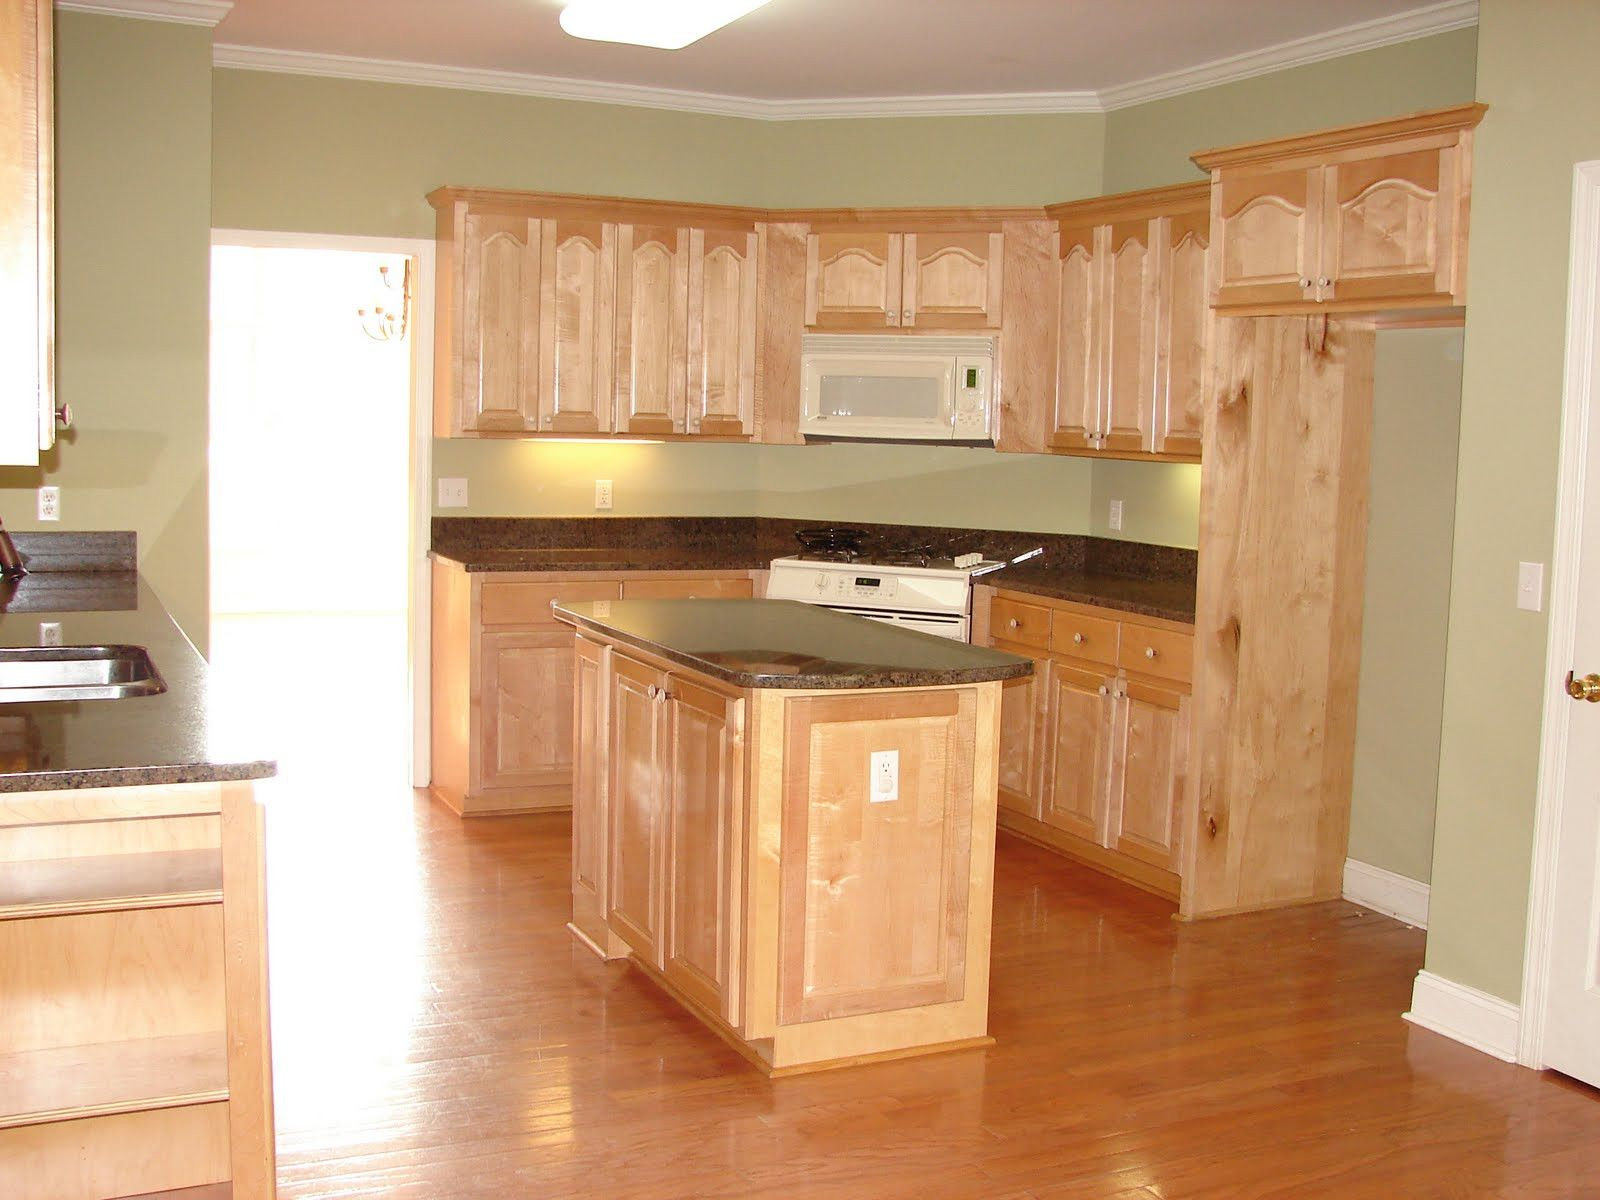 55 Floor And Decor Kitchen Cabinets Counter Top Ideas Check More At Http Www Planetgreenspot Com Home N Best Countertops